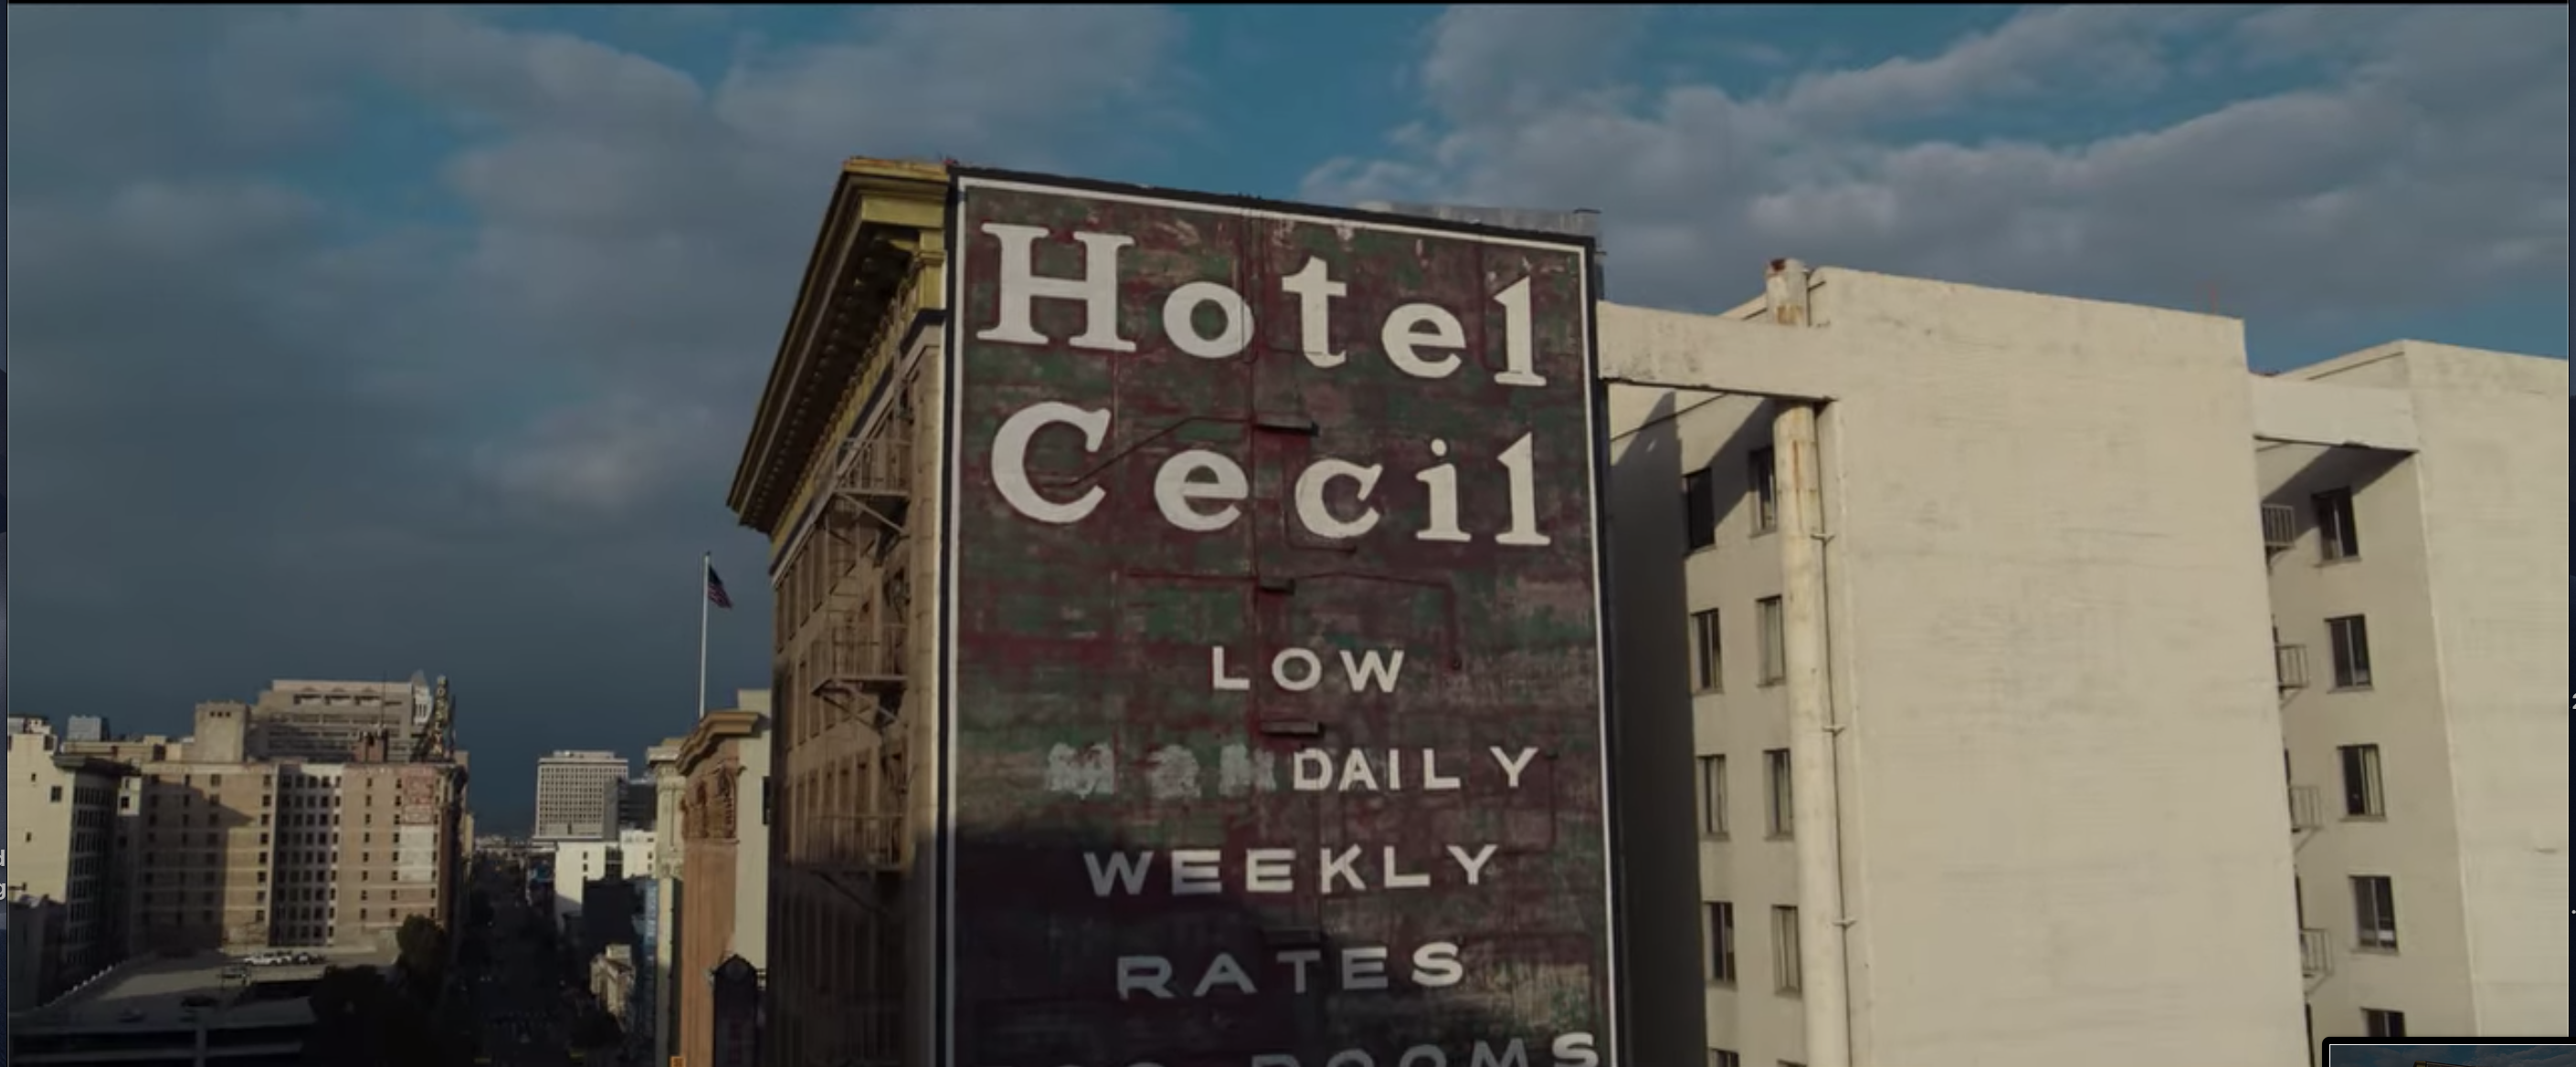 CSI:Reddit and the Case of the Cecil Hotel